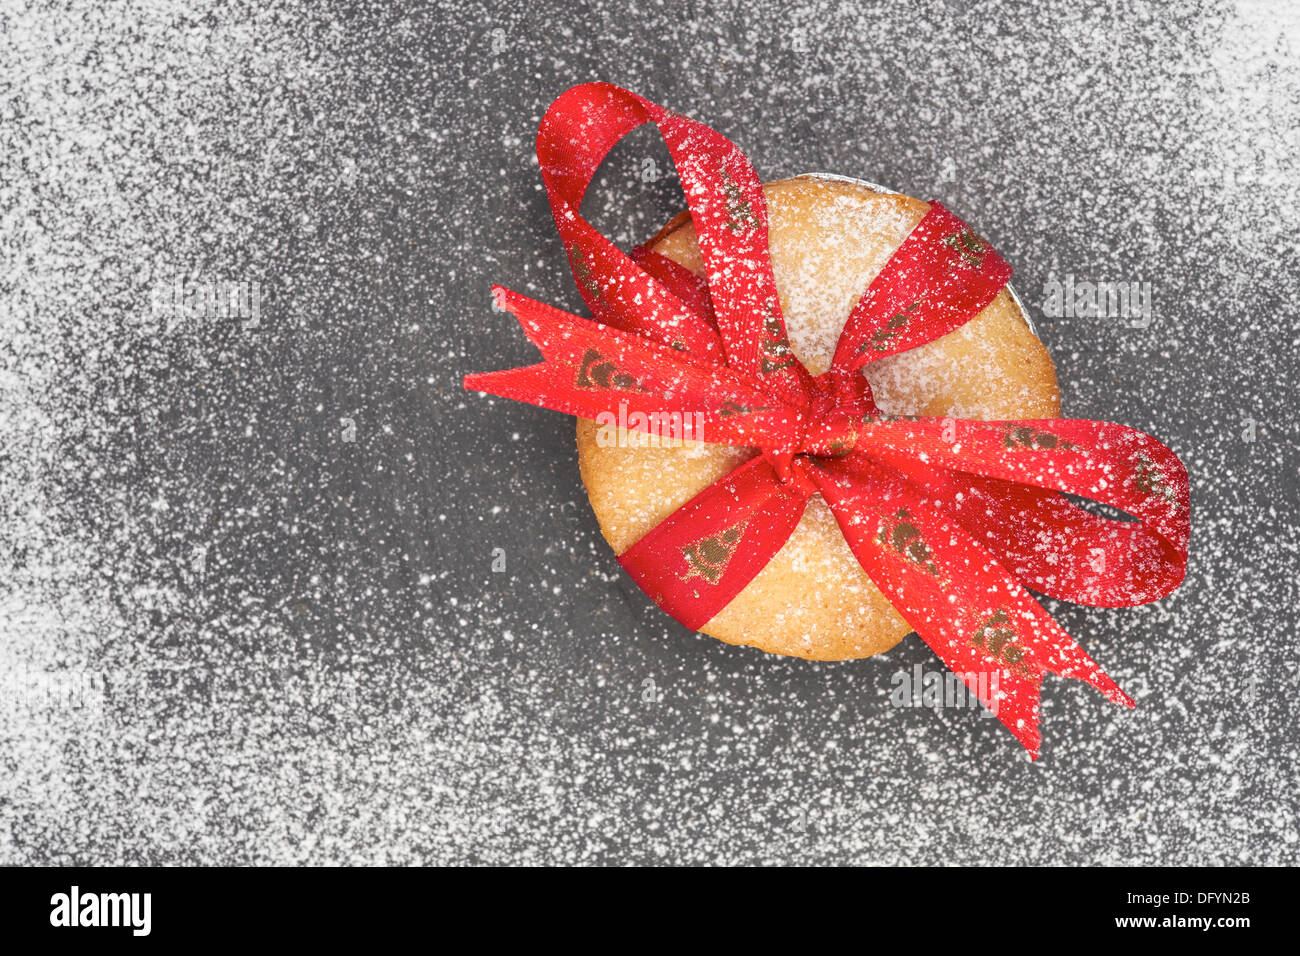 Sweet Christmas mince pie with a red ribbon tied round it on a Slate cooling board with icing sugar. - Stock Image